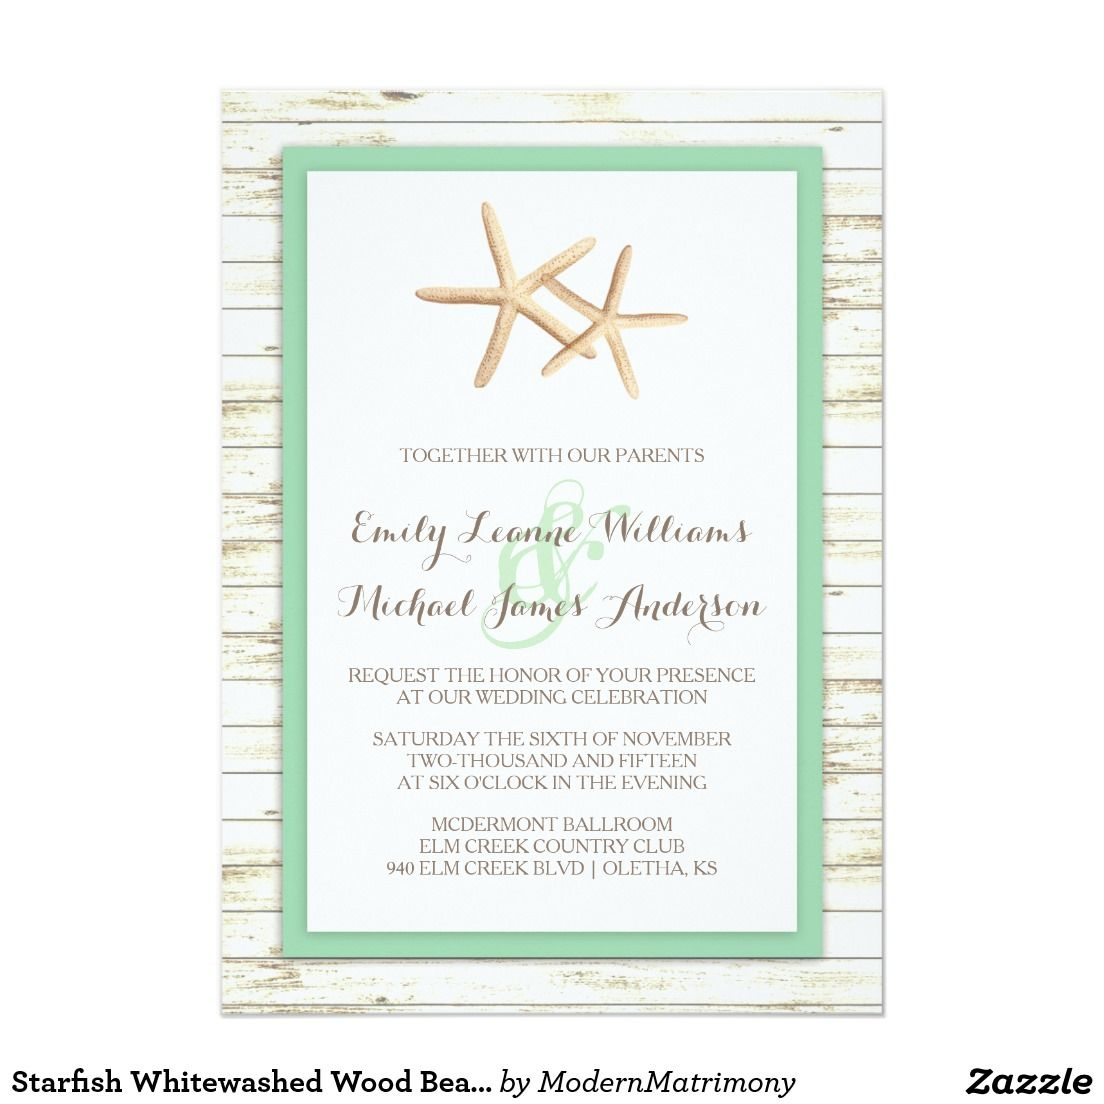 Starfish Whitewashed Wood Beach Wedding Invitation | Beach Wedding ...